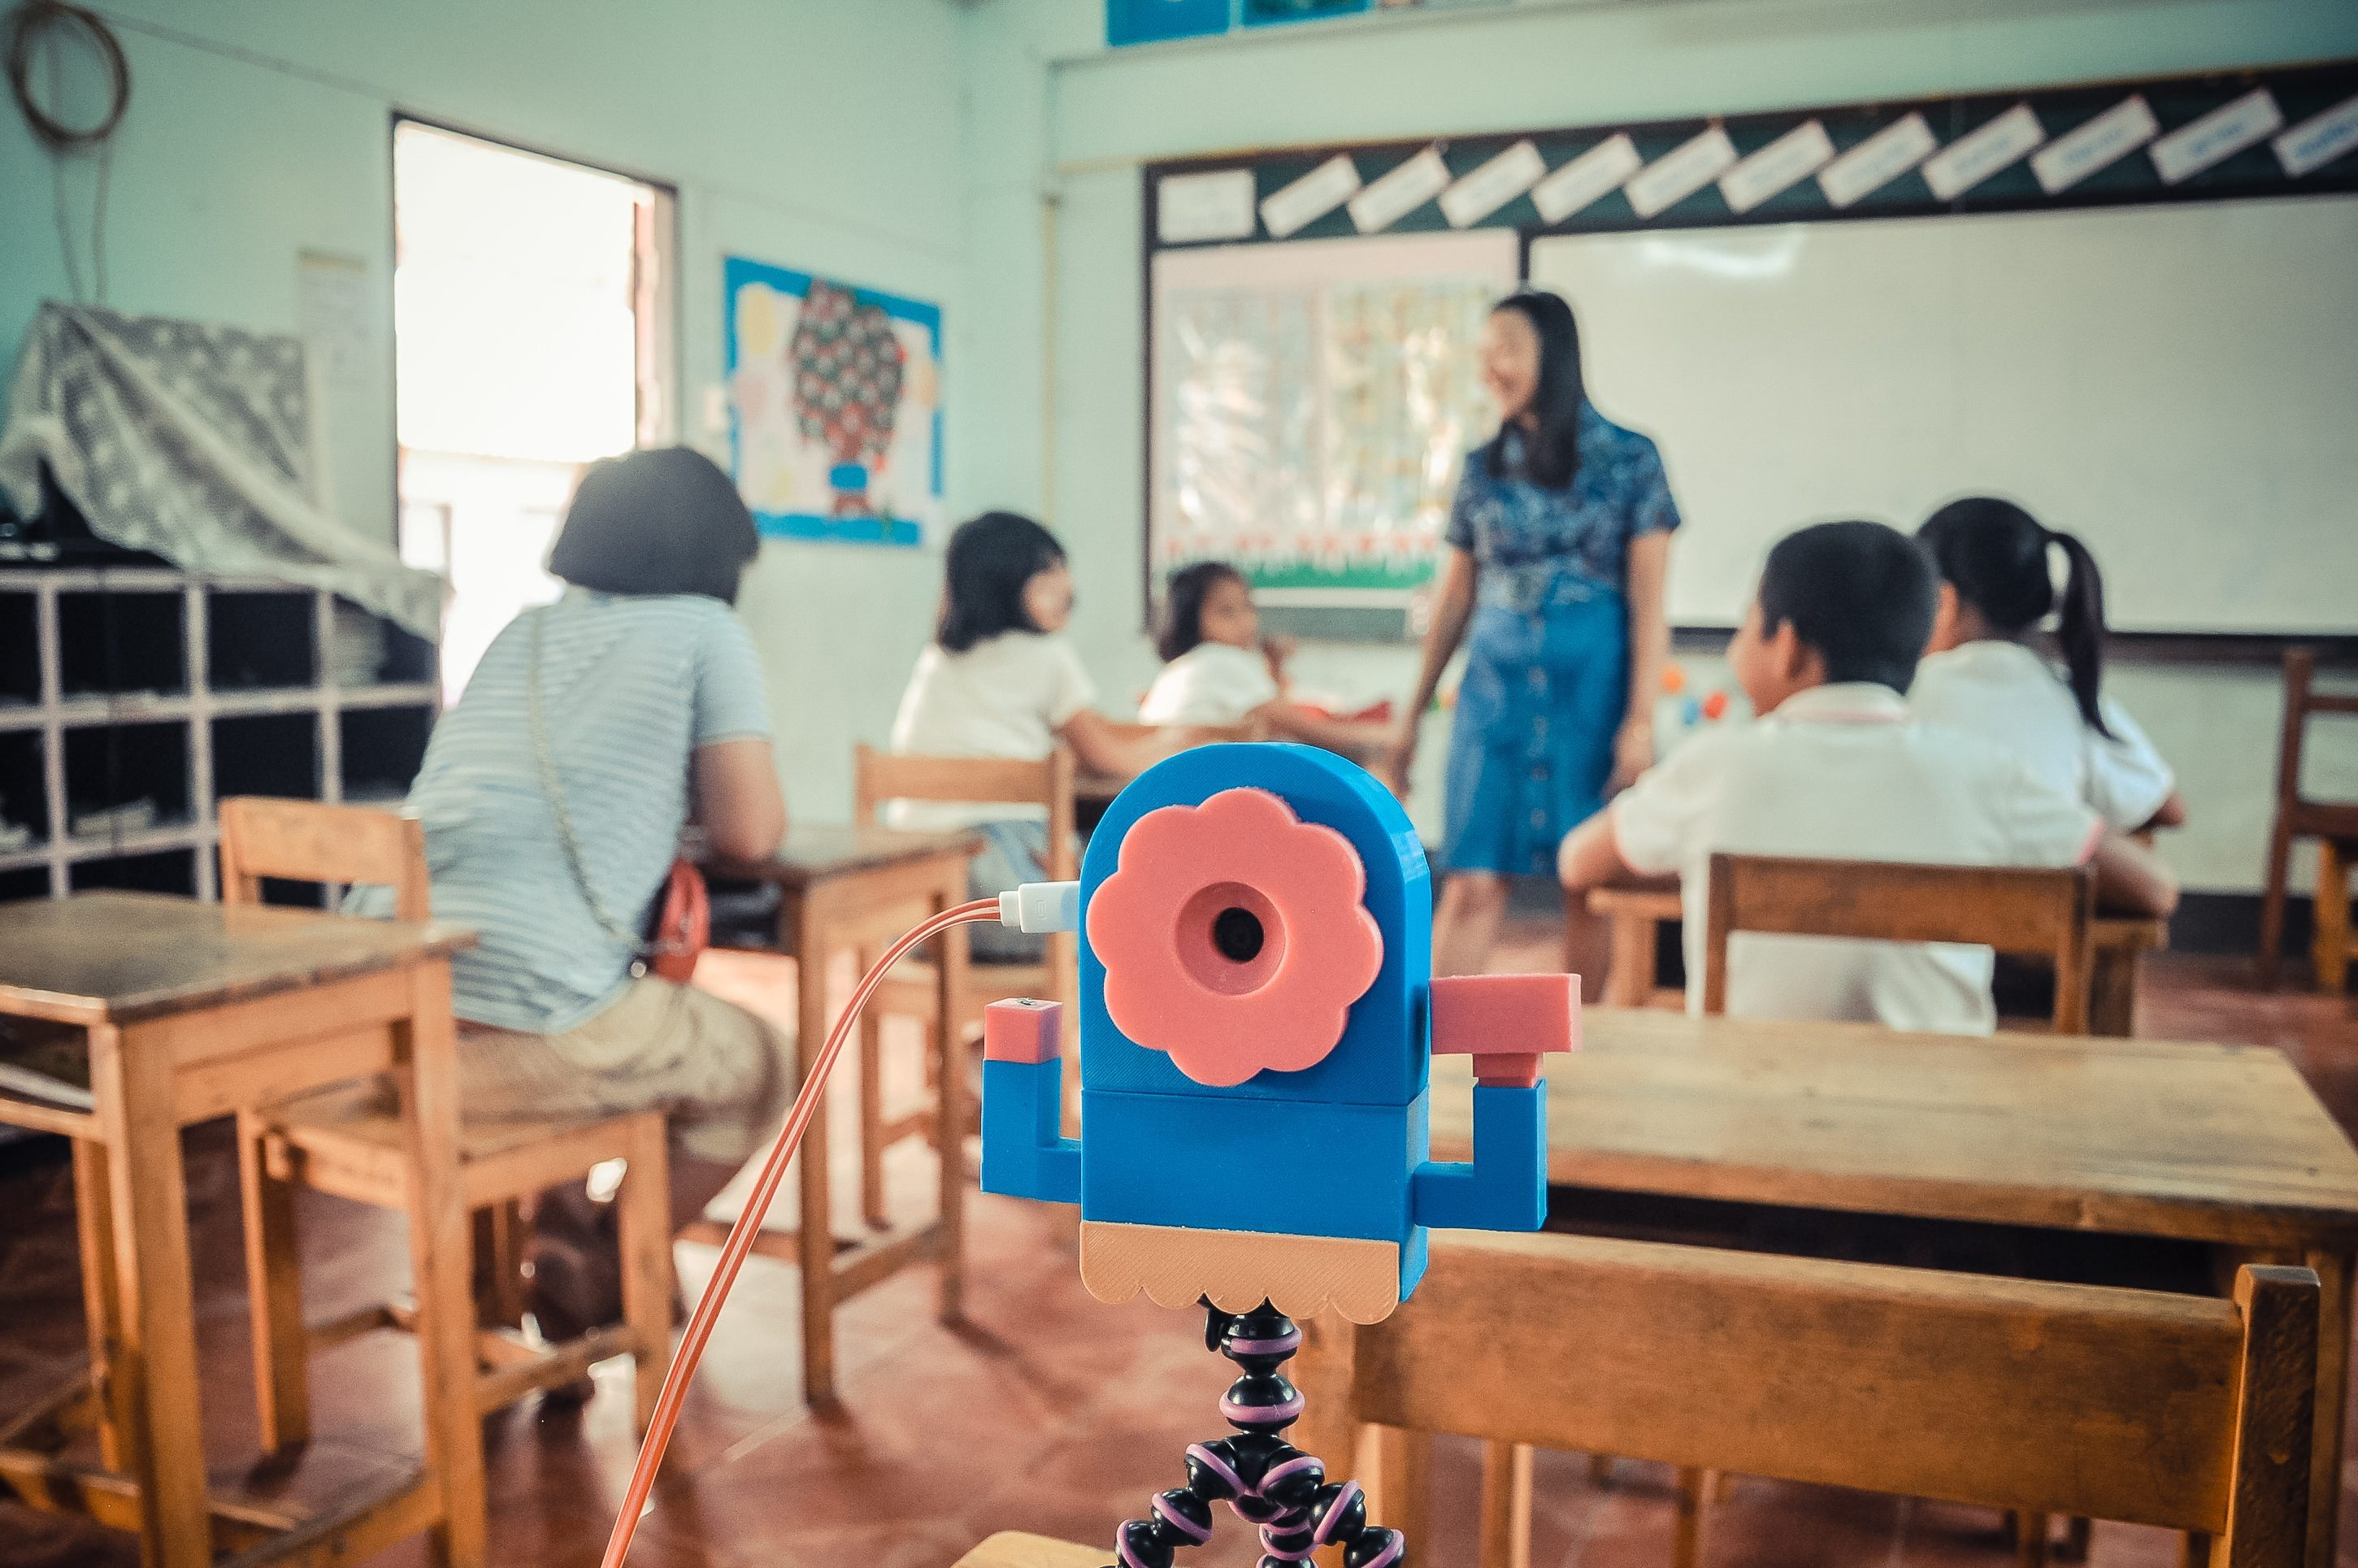 OBSY IoET platform can improve tech-based learning